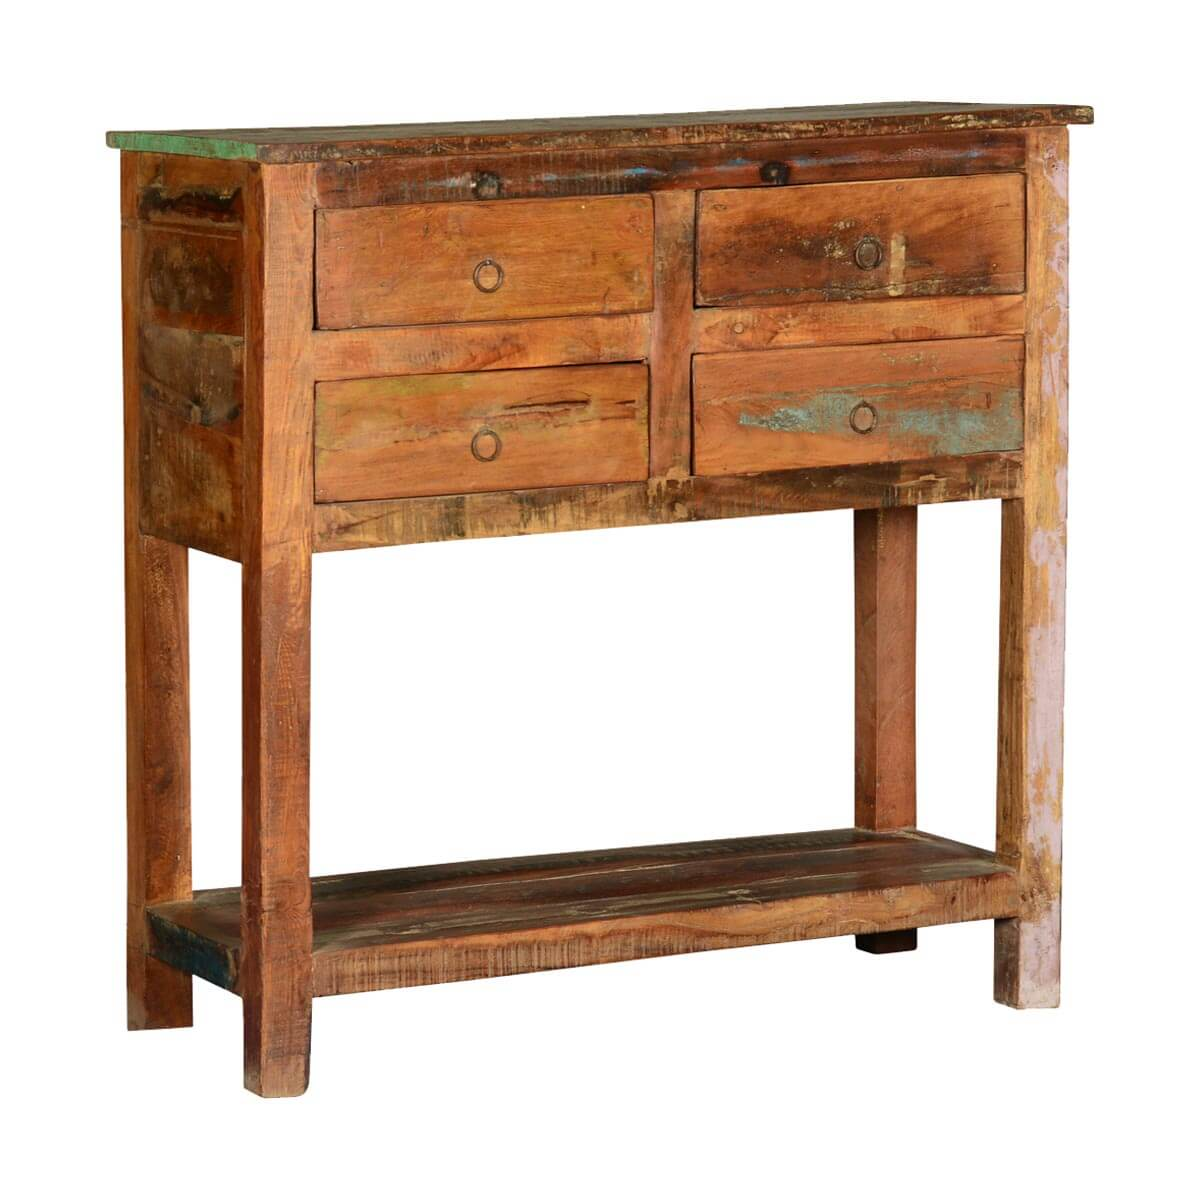 Rustic Wood Foyer Table : Frontier rustic reclaimed wood hall console table w drawers